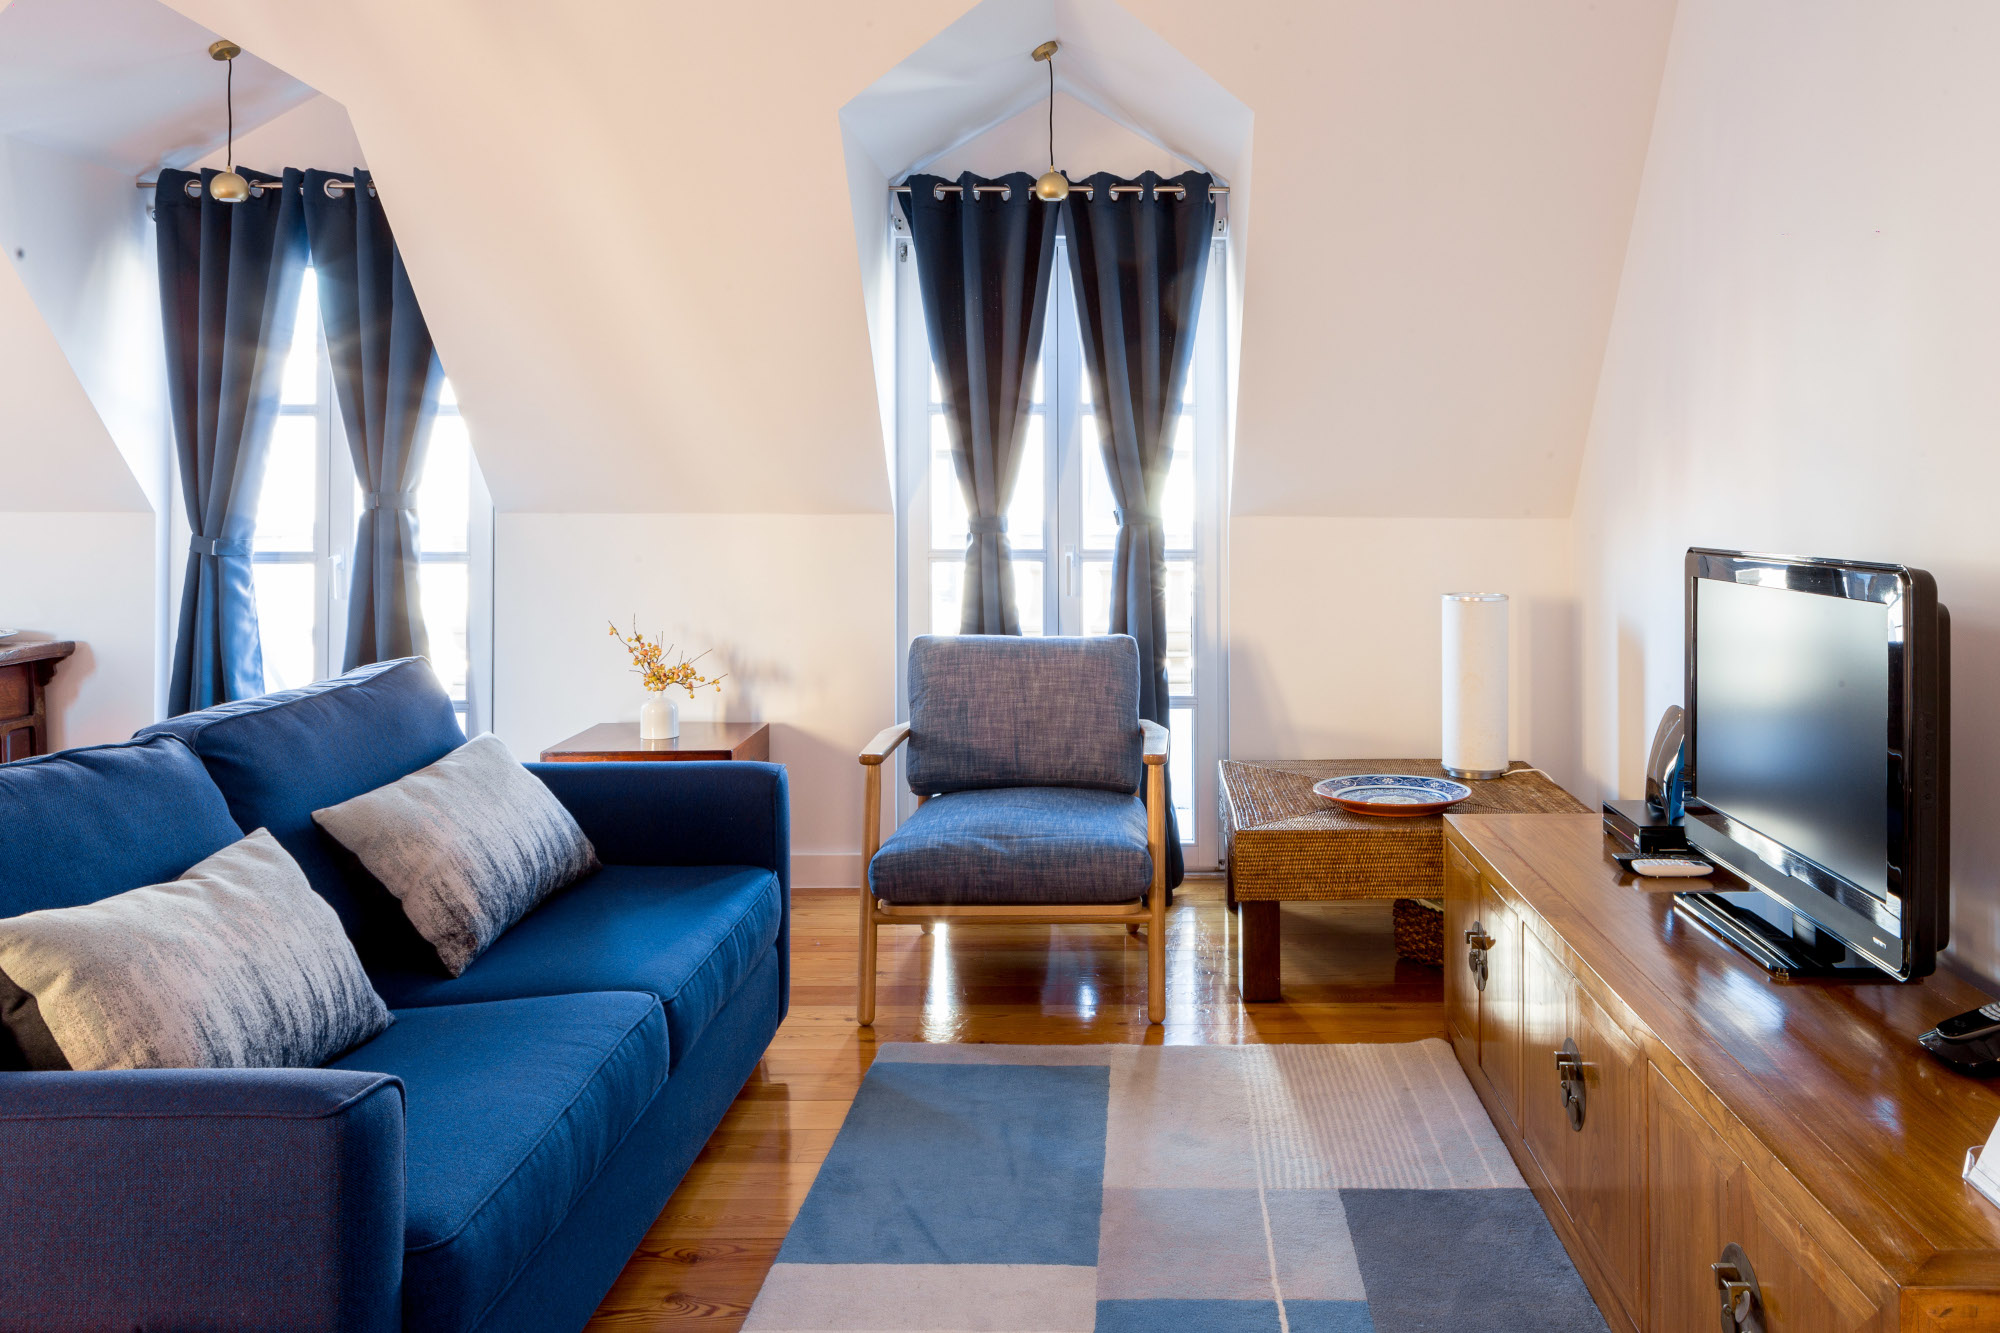 Two bedroom apartment Lisbon - living area